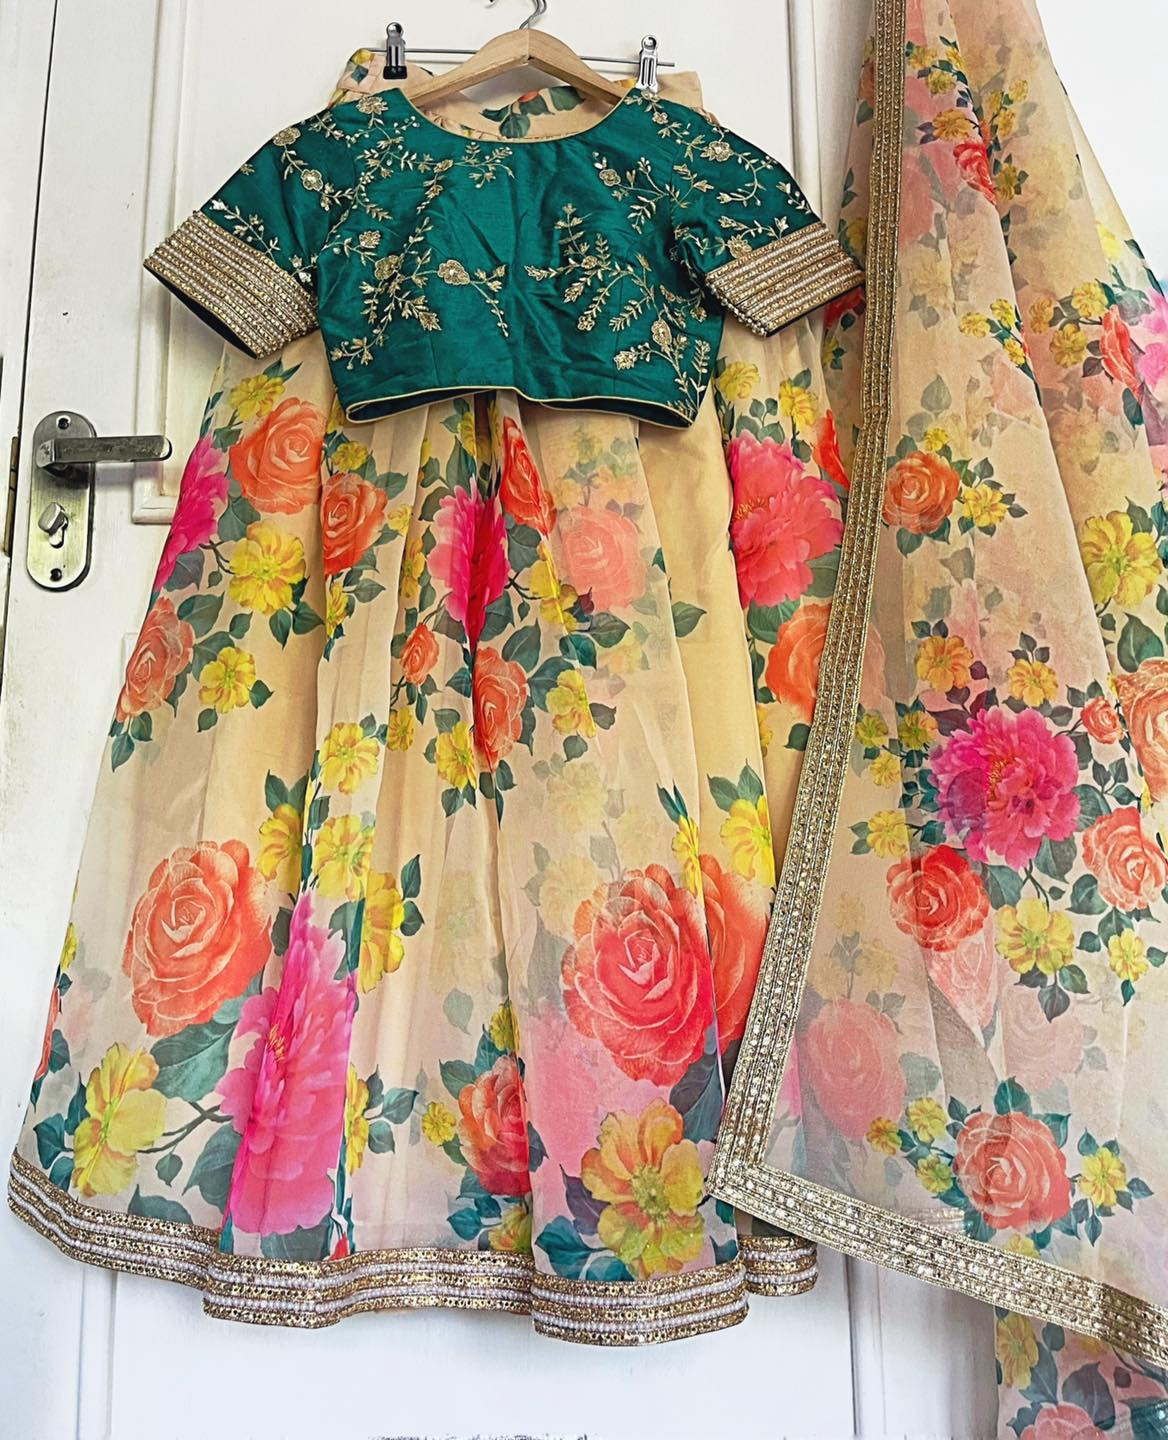 FLORAL ORGANZA. <br> Floral organza lehenga or sari. Beautiful floral print on an ivory base.   Gorgeous borders and a hand embroidered blouse on a raw silk base.  2021-05-19